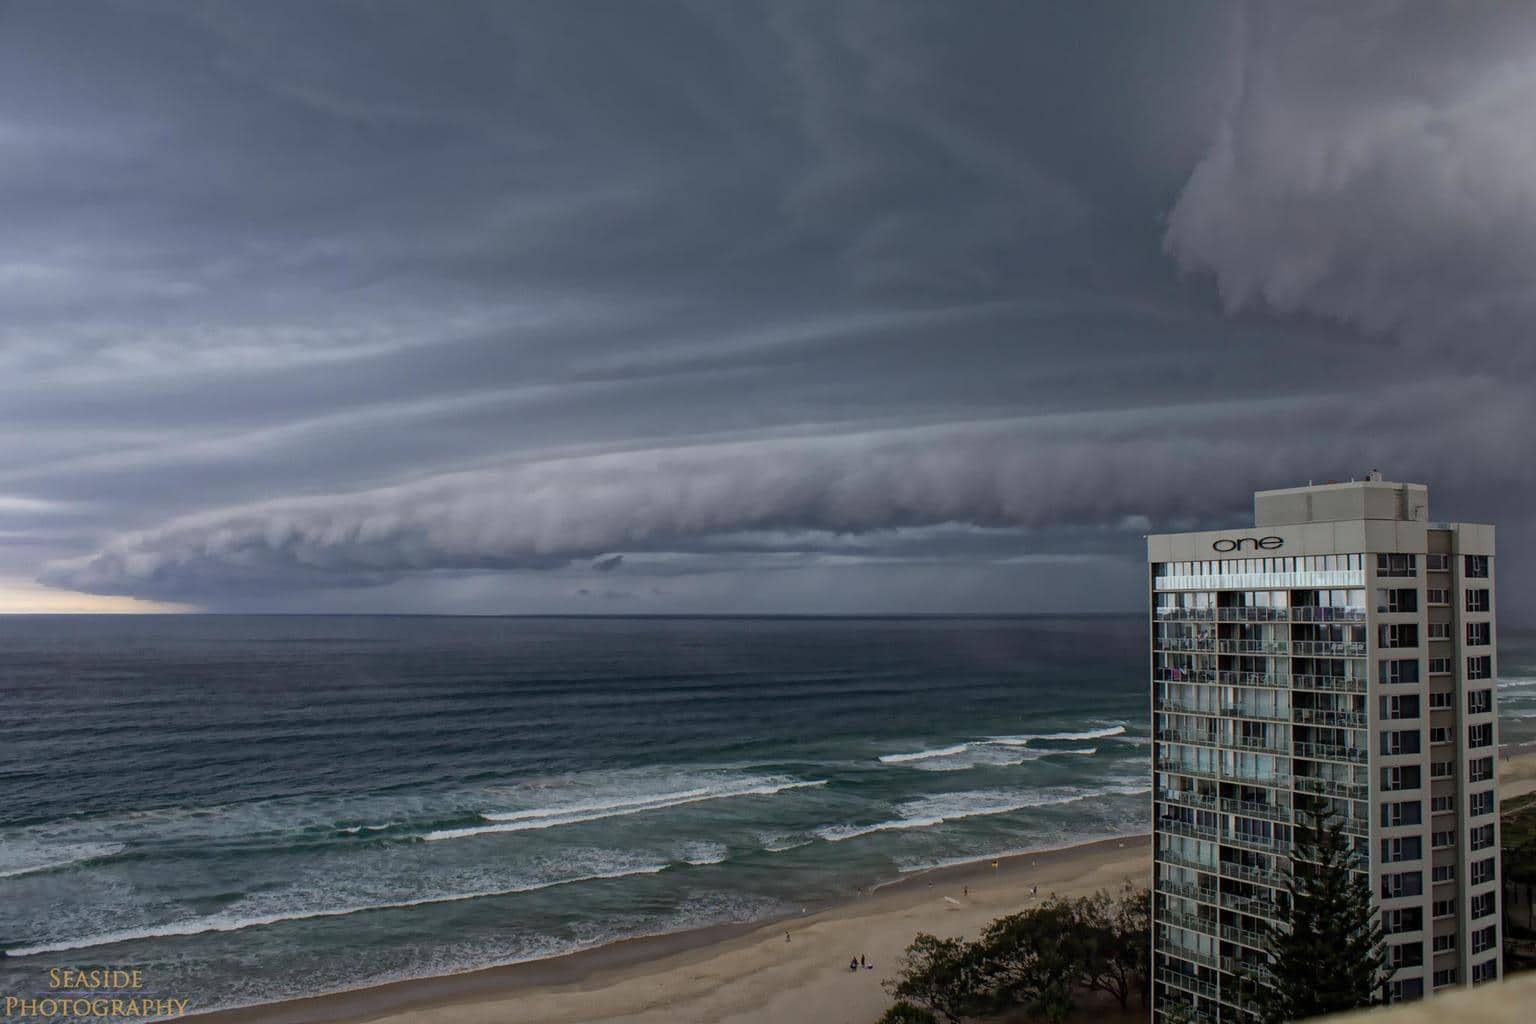 This was a huge storm that was coming in over Surfers Paradise Queensland Australia last year, this shelf cloud was amazing to see transform